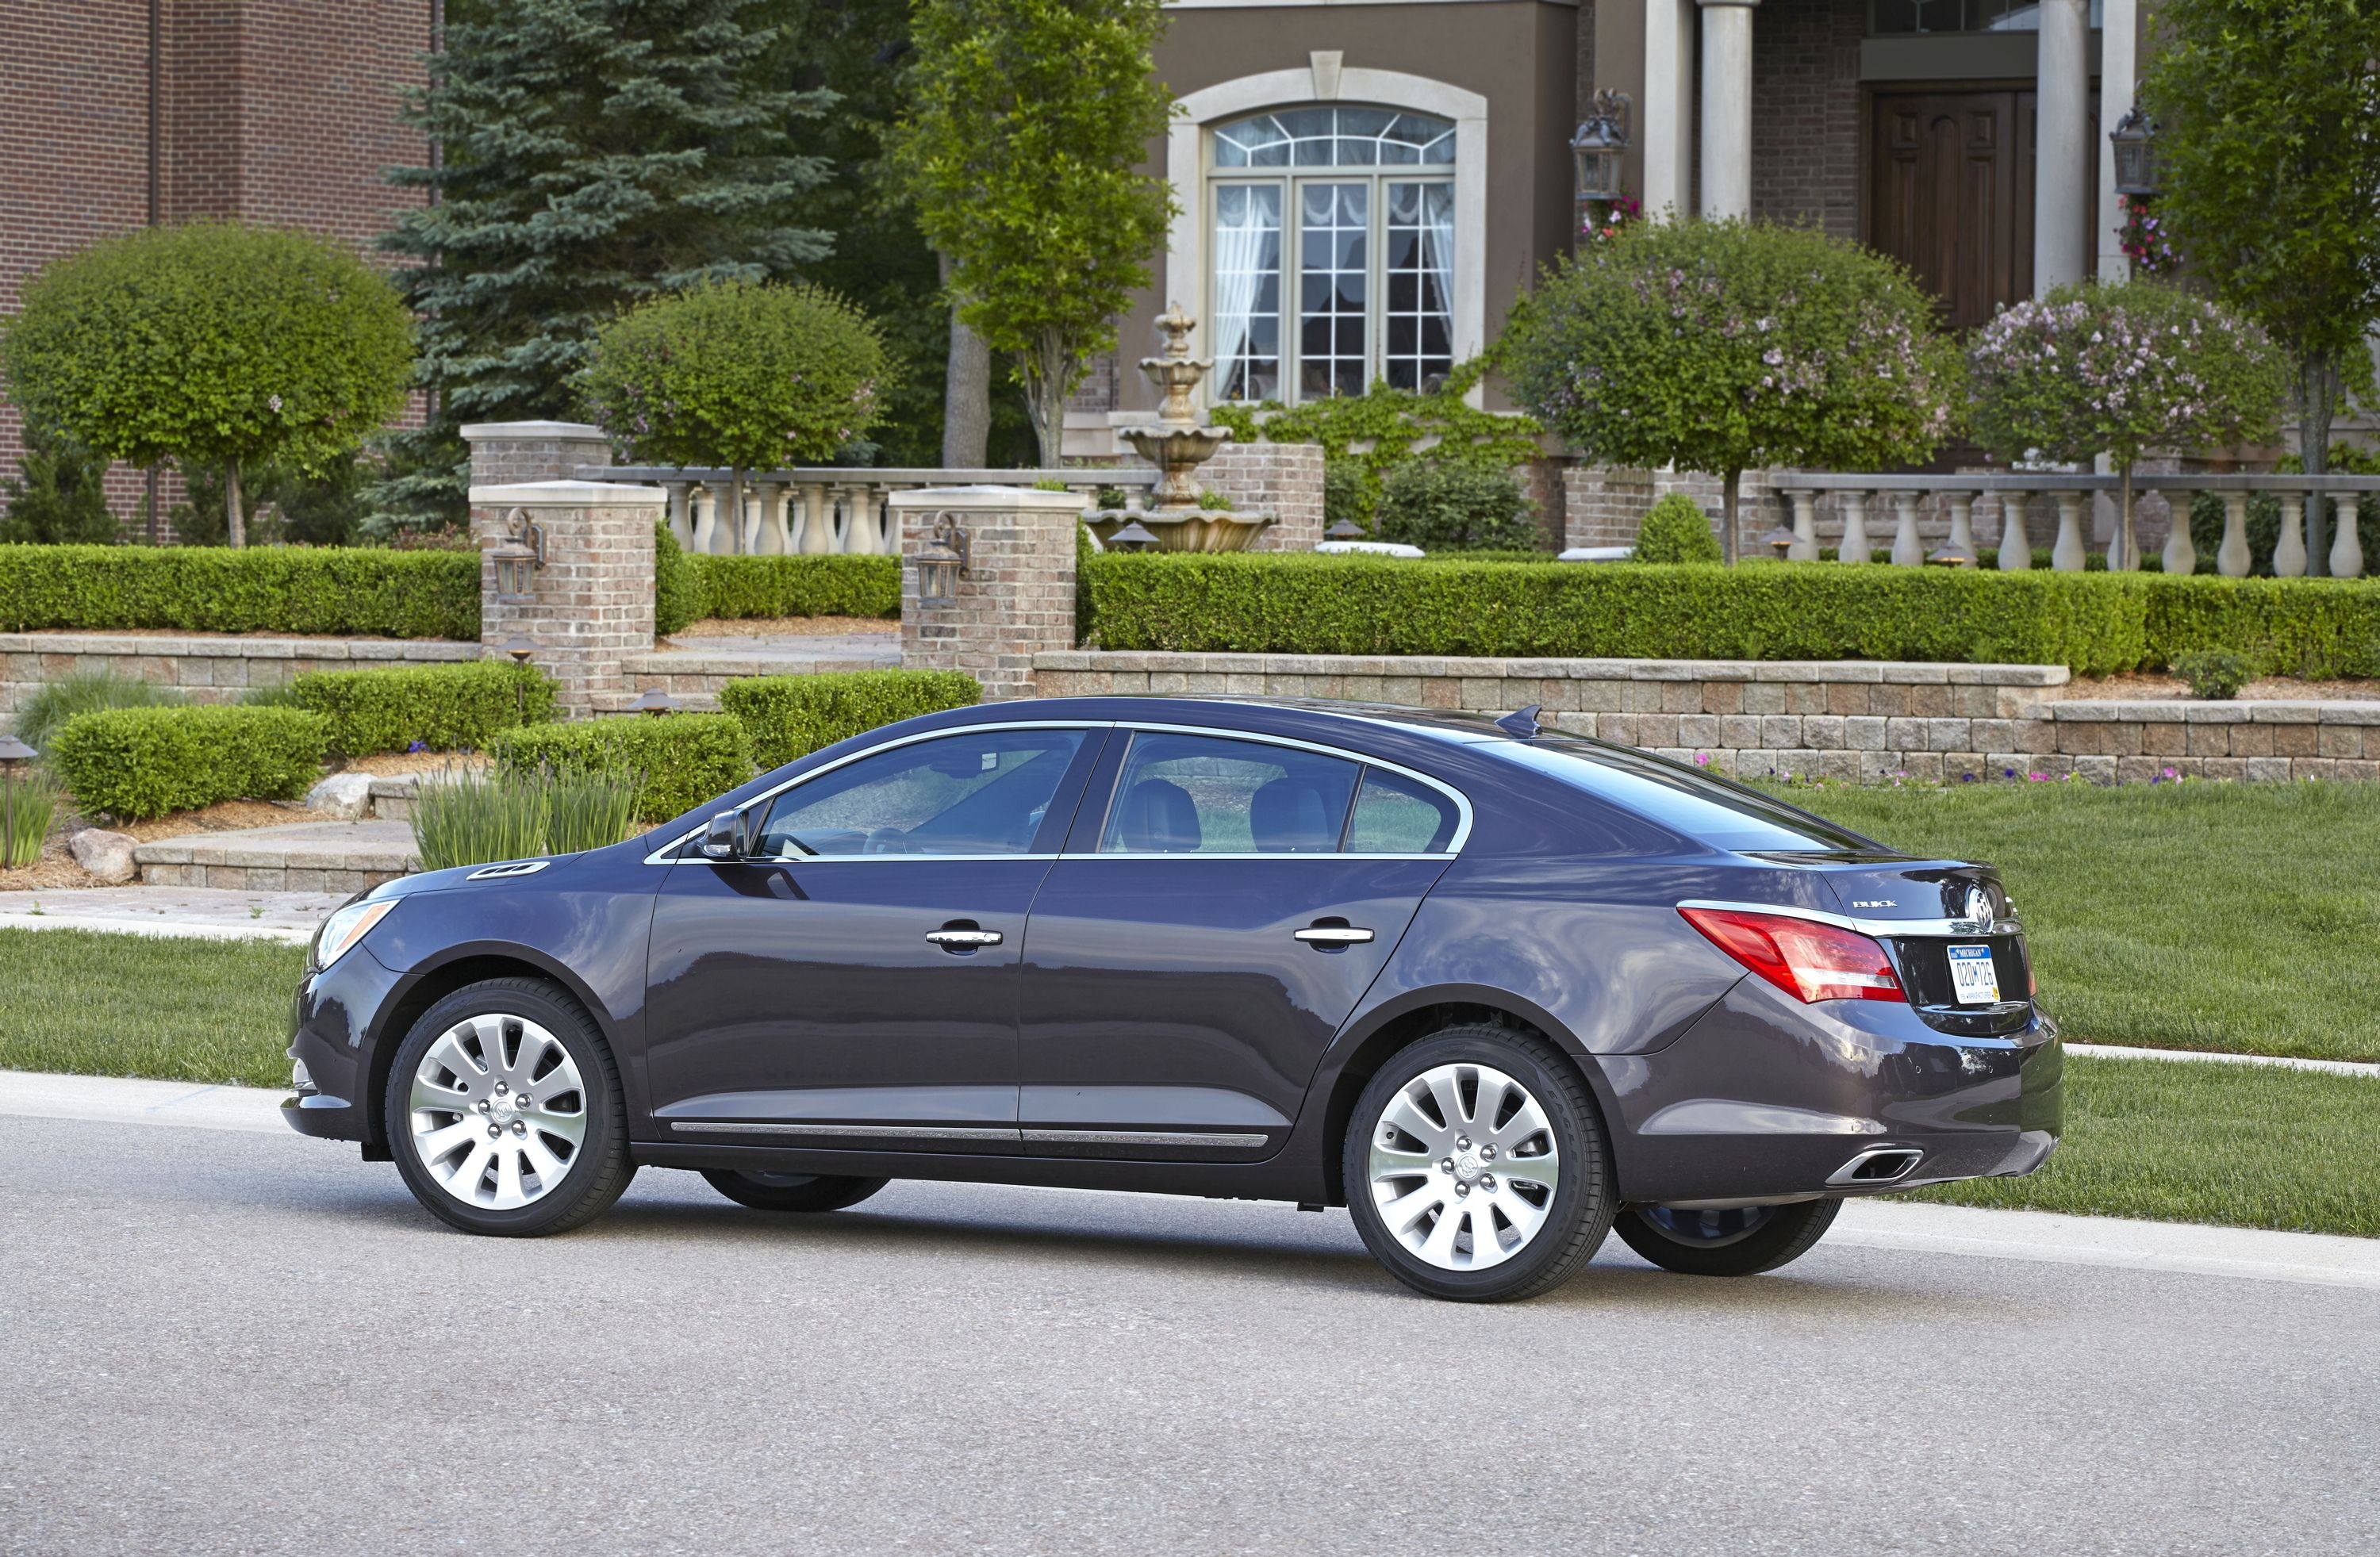 Pin By Patriot Buick Gmc On 2014 Buick Lacrosse Buick Lacrosse Buick Sedan